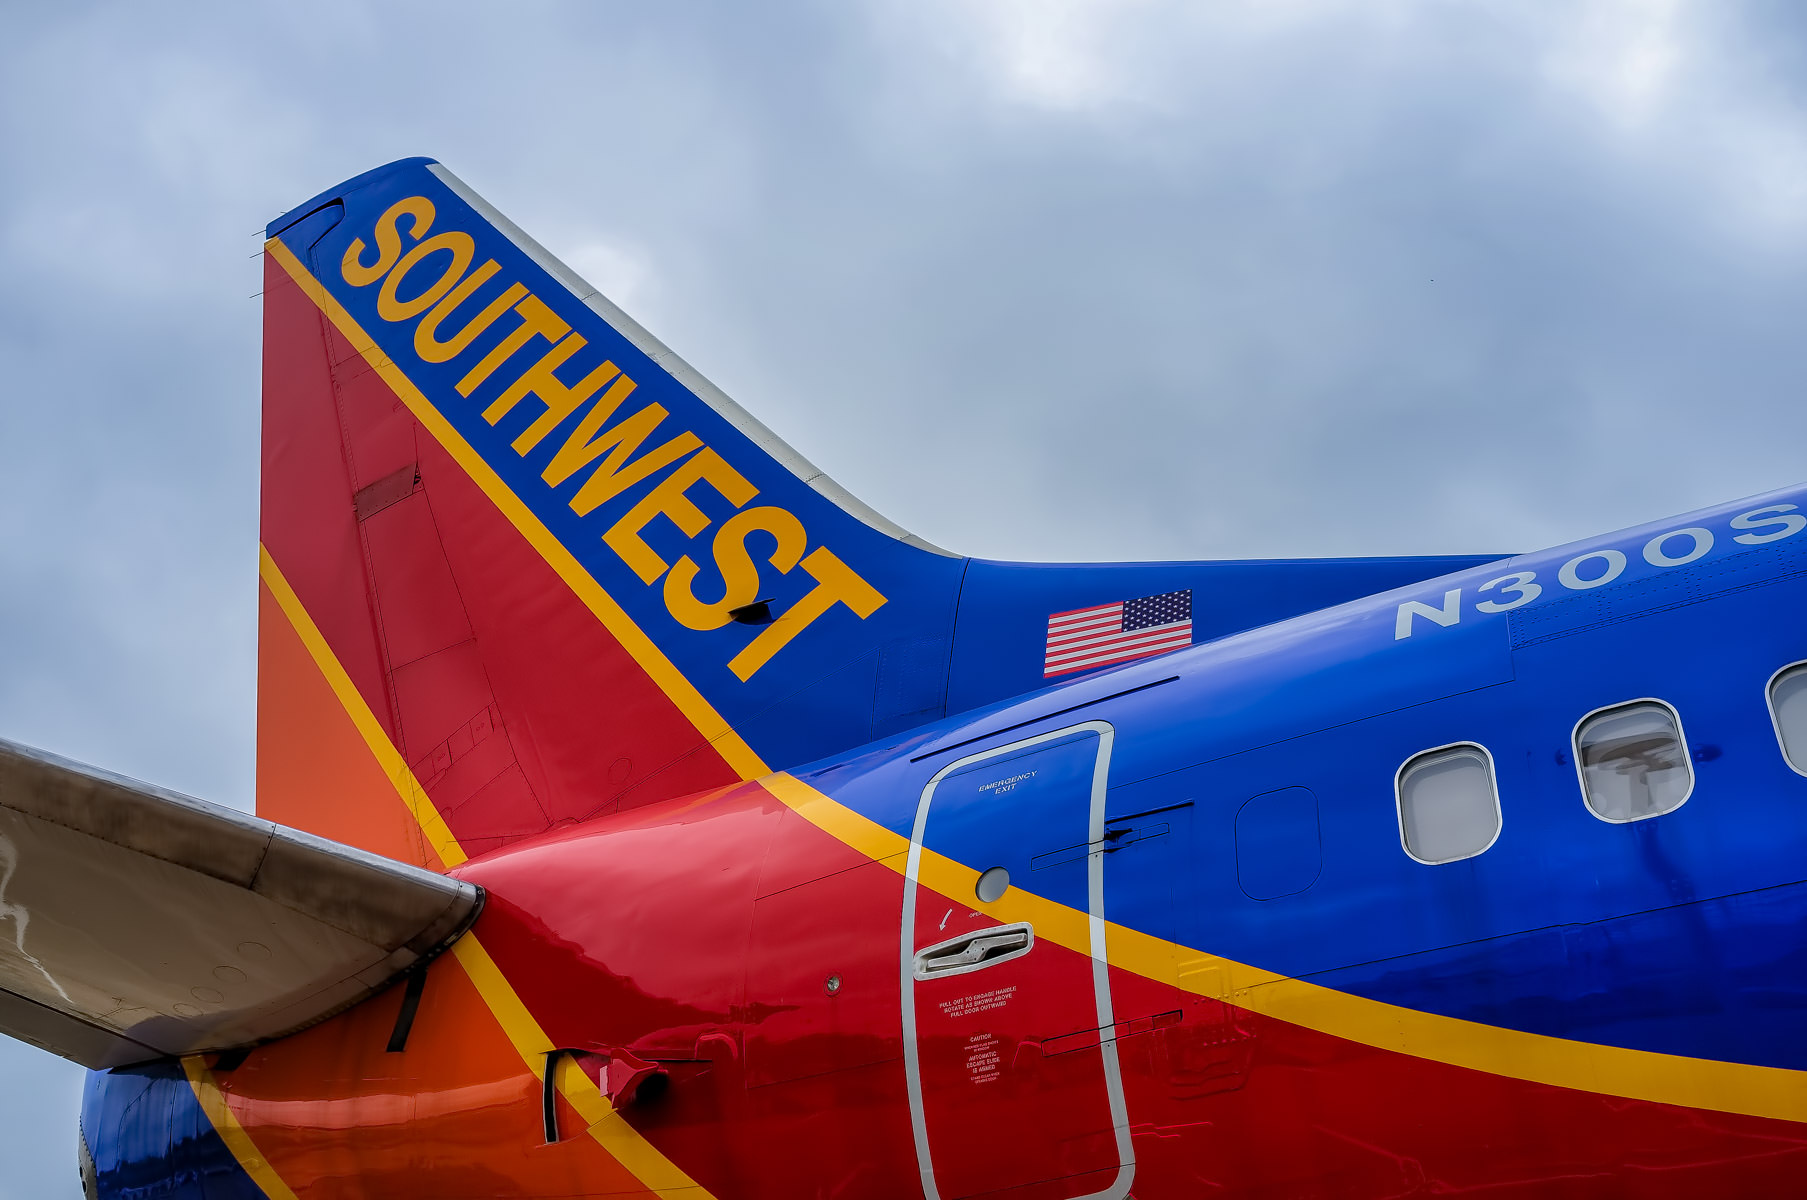 Exterior detail of Southwest Airlines' Spirit of Kitty Hawk, the world's first production Boeing 737-300, now on display at Dallas' Frontiers of Flight Museum at Love Field.